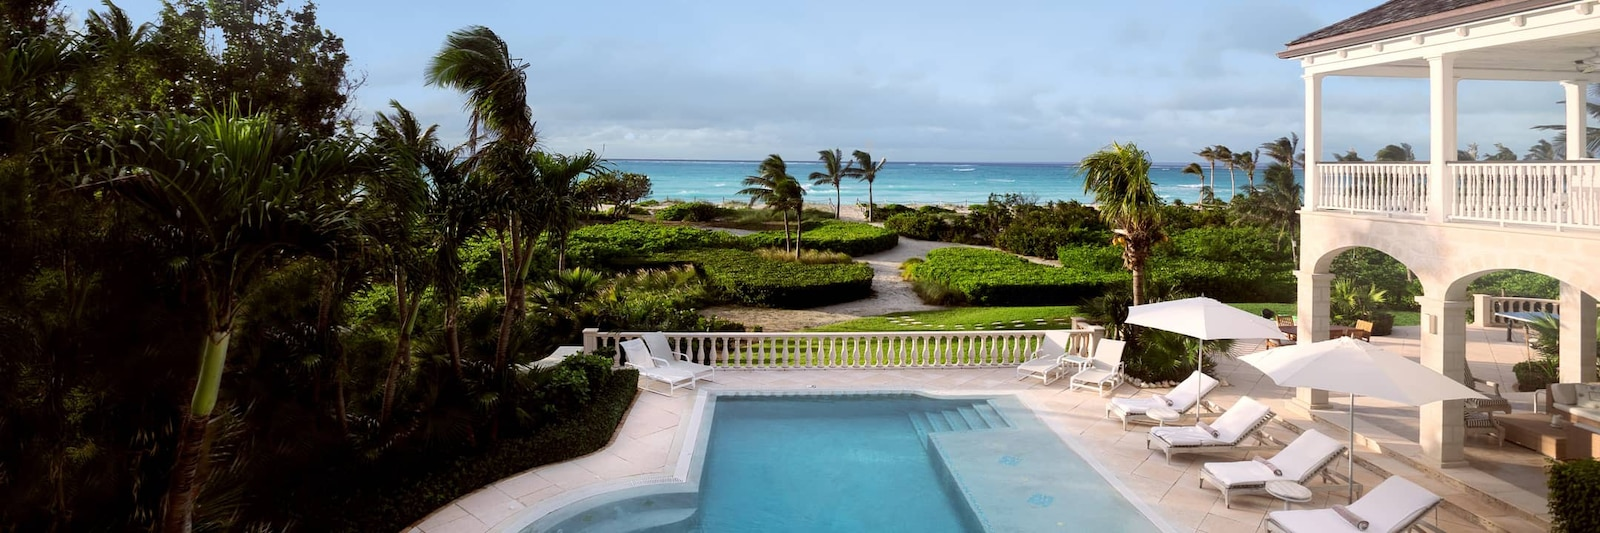 Luxury rentals in Turks- og Caicoseyjar